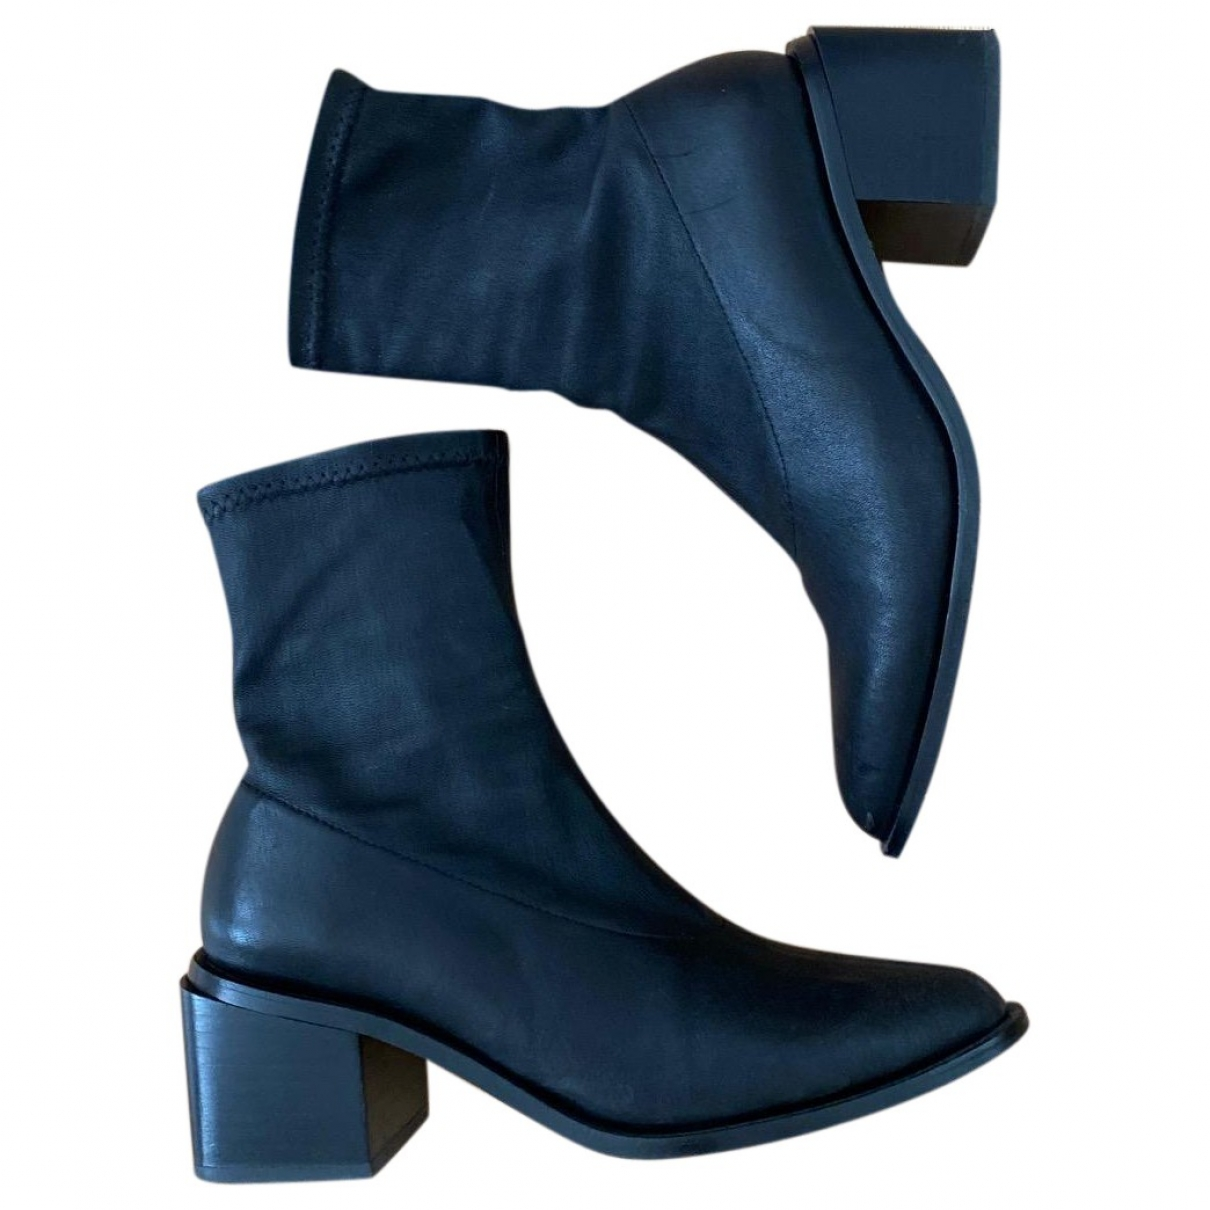 Robert Clergerie \N Black Leather Ankle boots for Women 36 EU